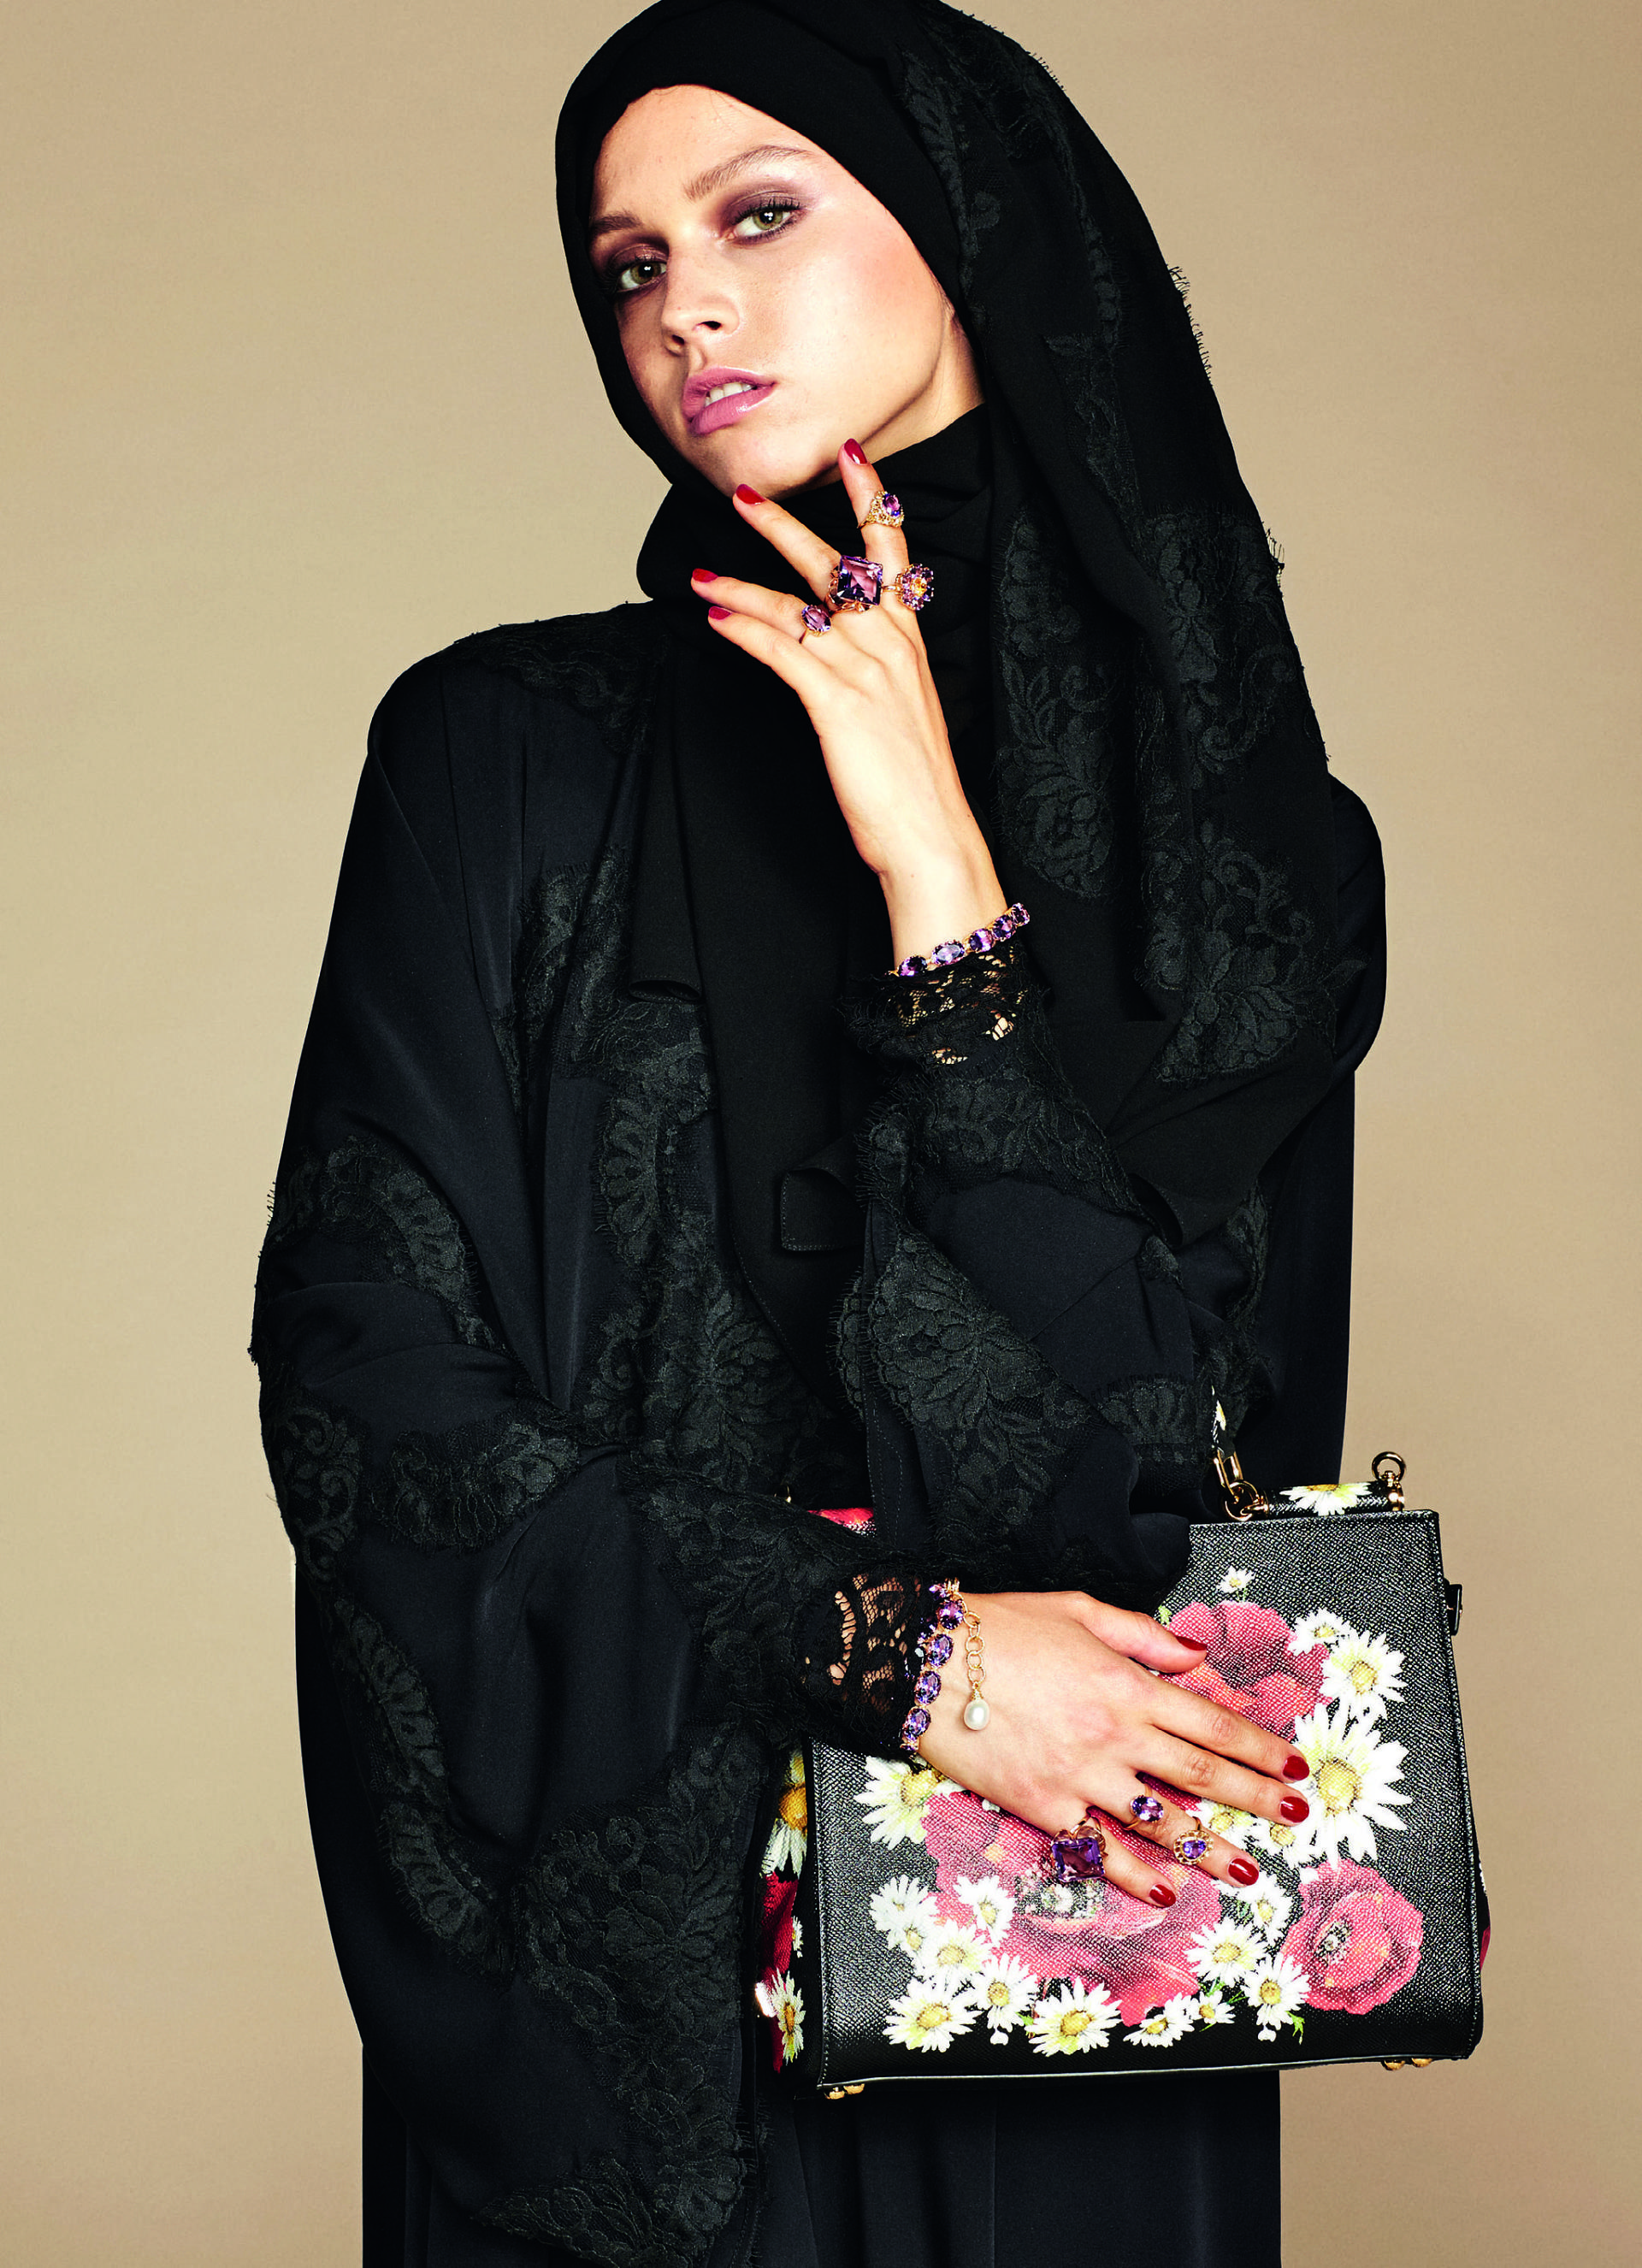 Over_Exposed_Dolce-Gabbana-Hijab-Abaya-Collection4